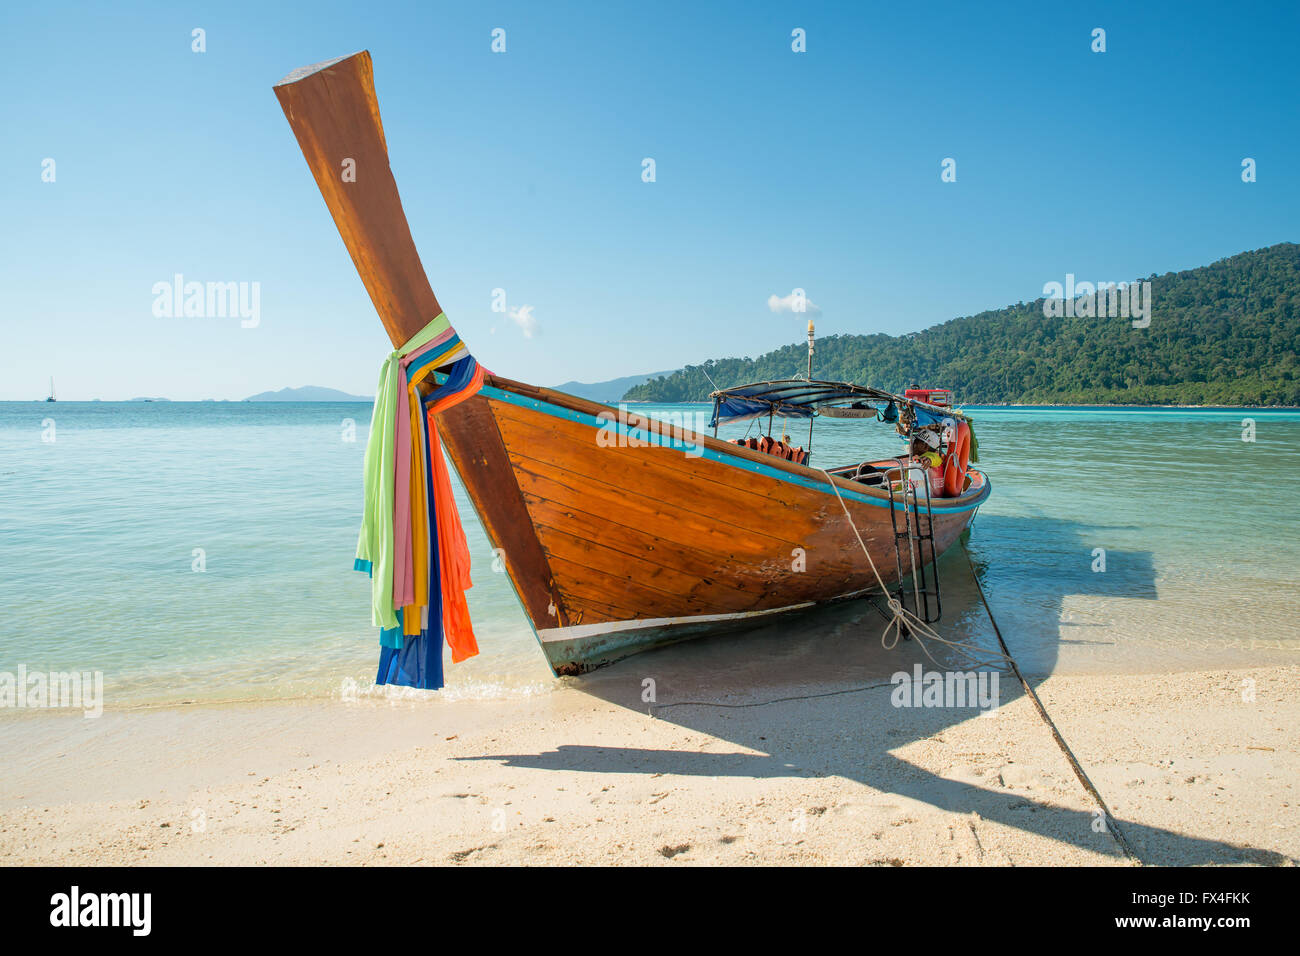 Summer, Travel, Vacation and Holiday concept - Tropical beach, longtail boats at Lipe island in Satun, Thailand - Stock Image